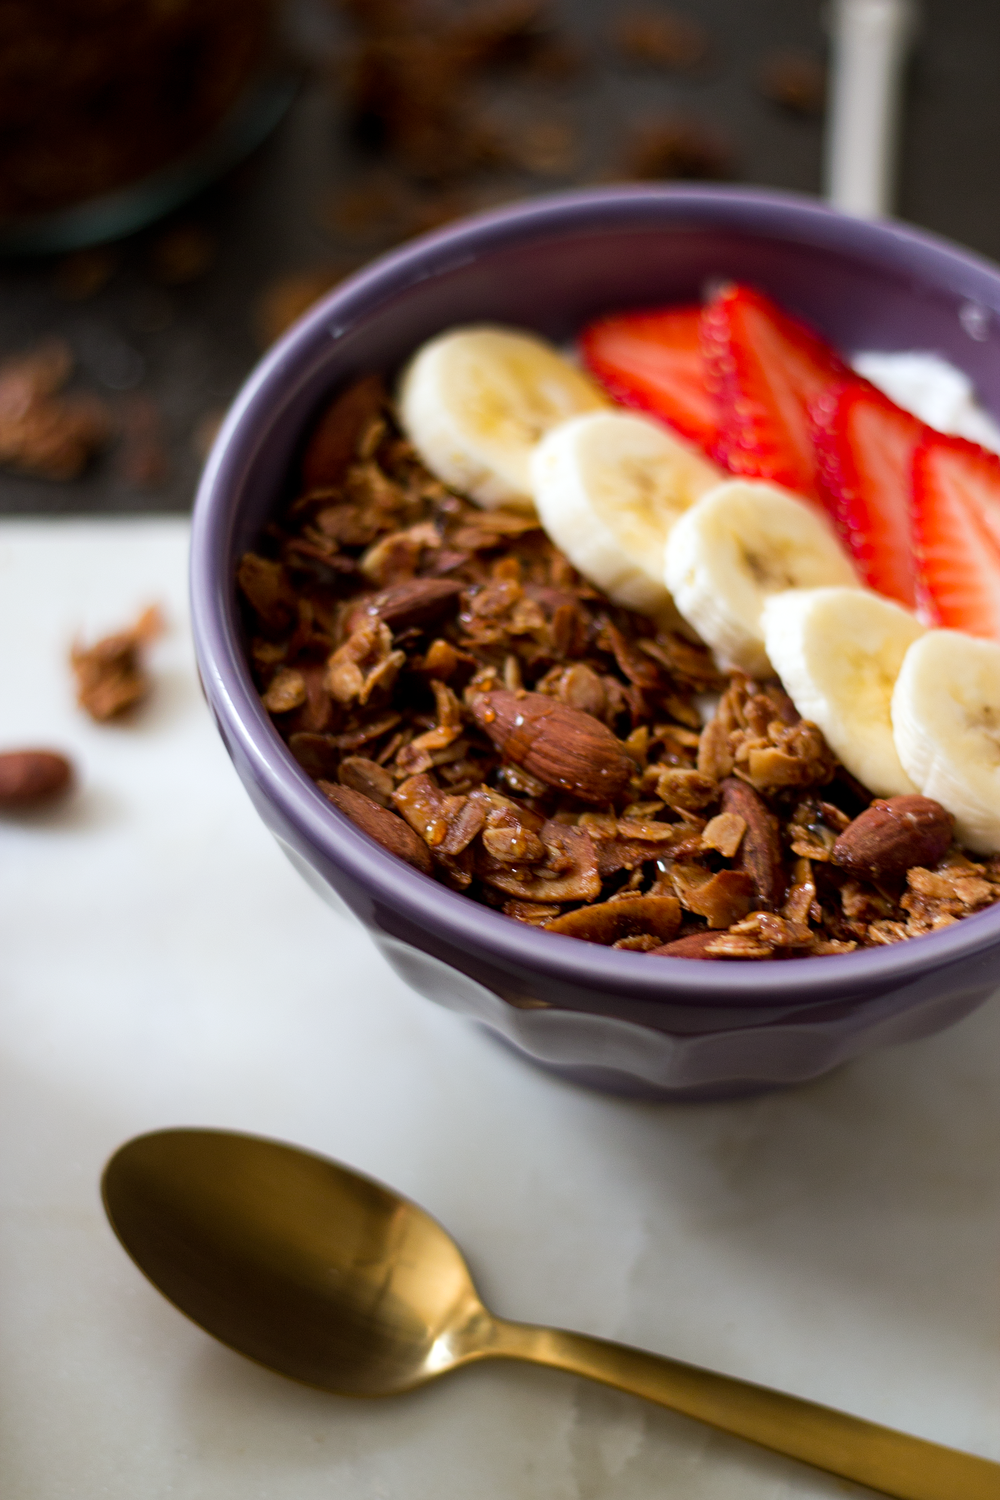 Cinnamon Almond and Coconut Granola from Unusually Lovely